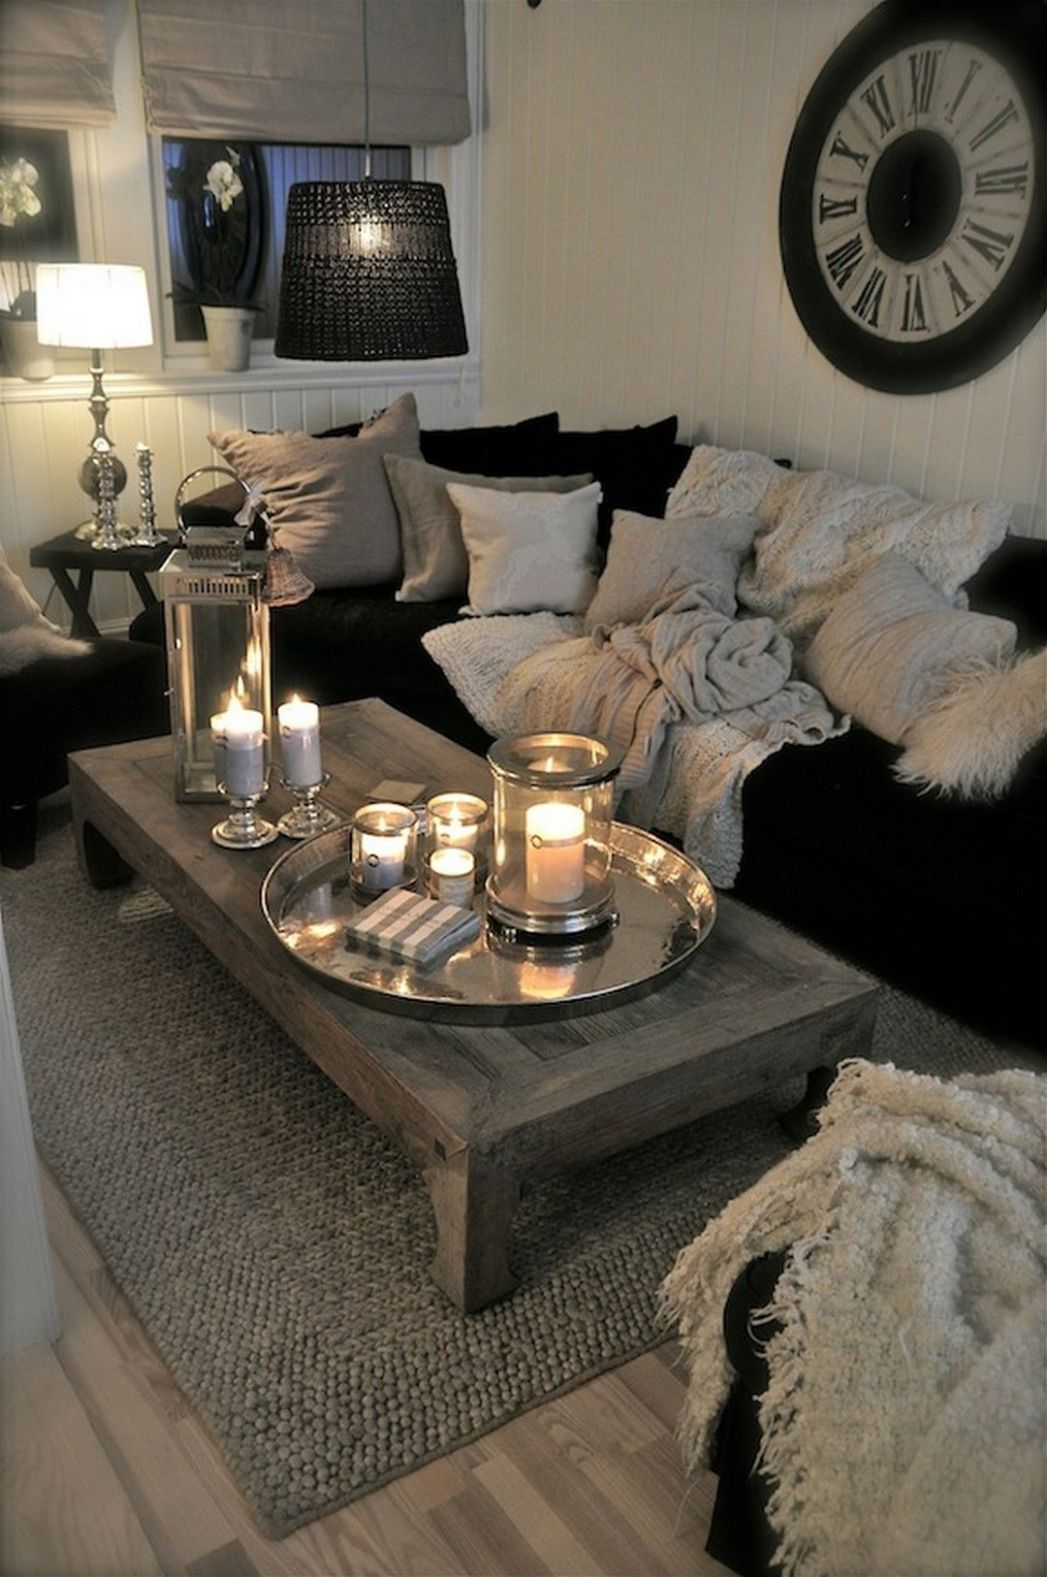 Awesome Picture of First Apartment Ideas (With images) | Apartment ...